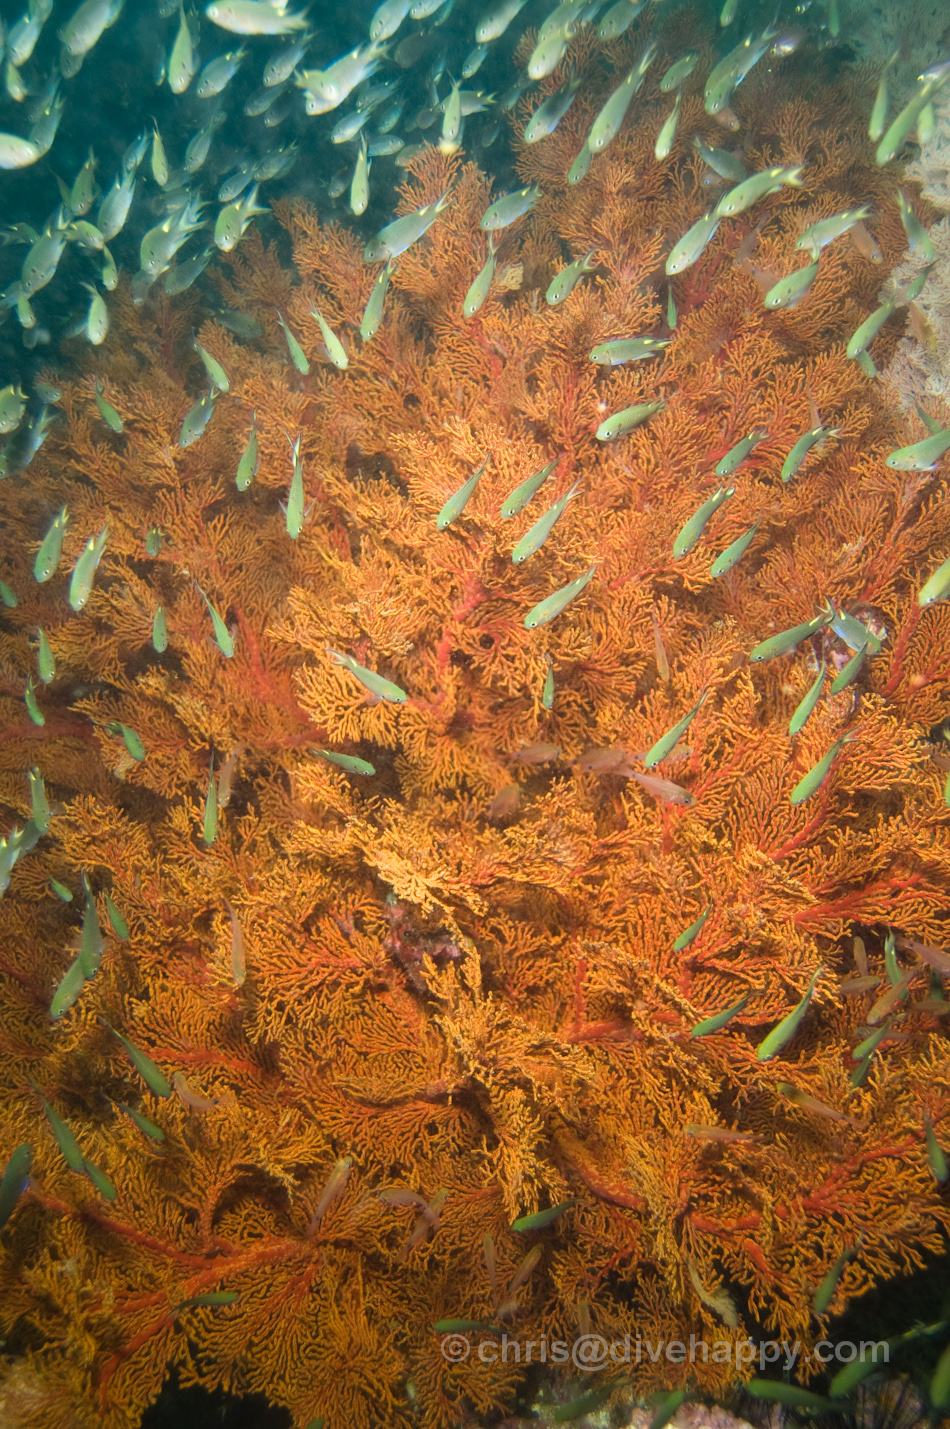 Fan Corals - Diving Burma